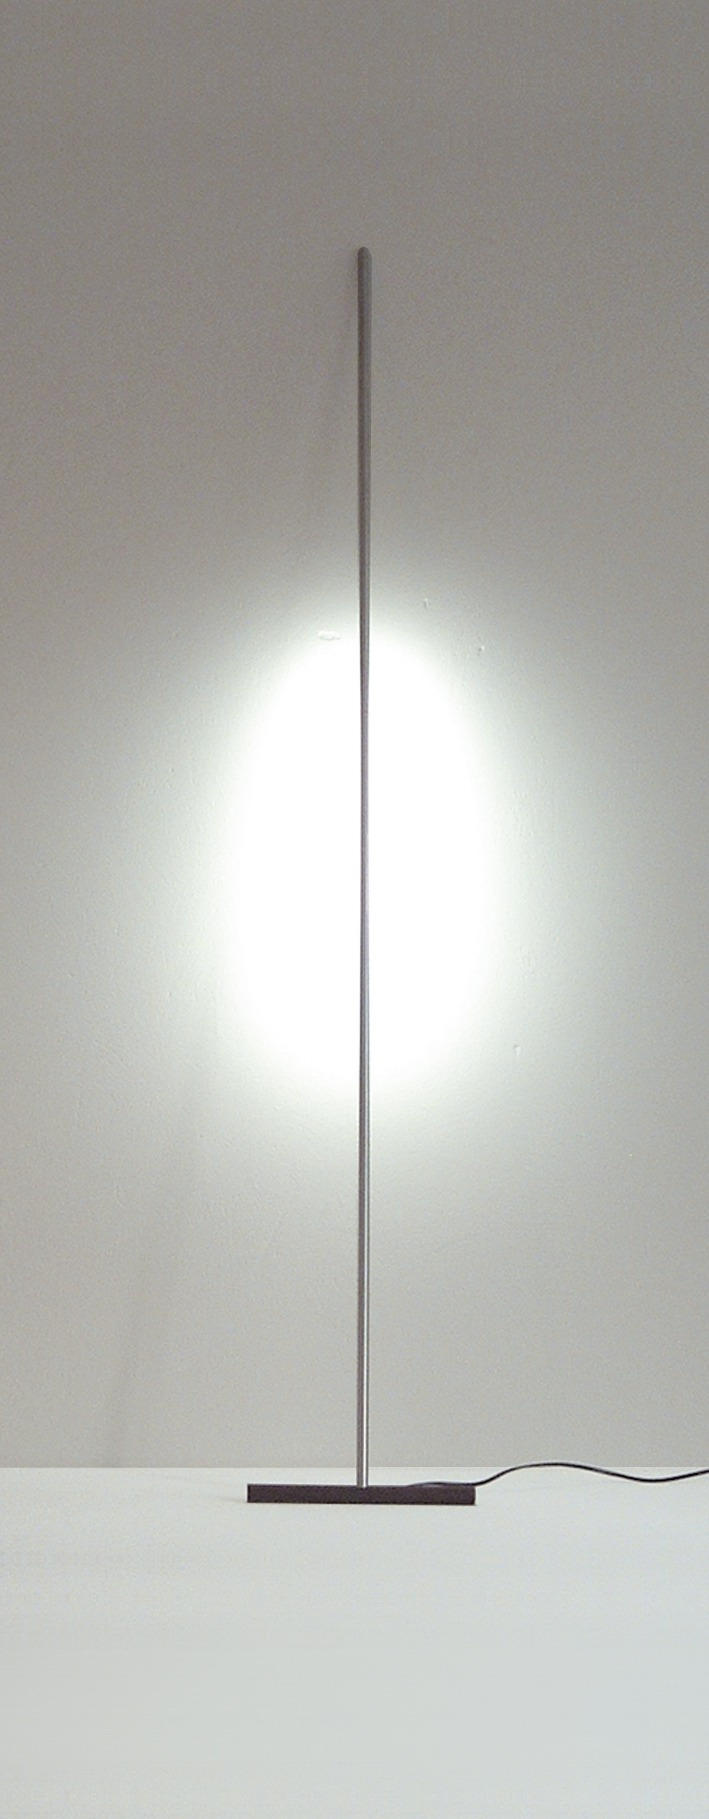 Duo Design T-Light vloerlamp